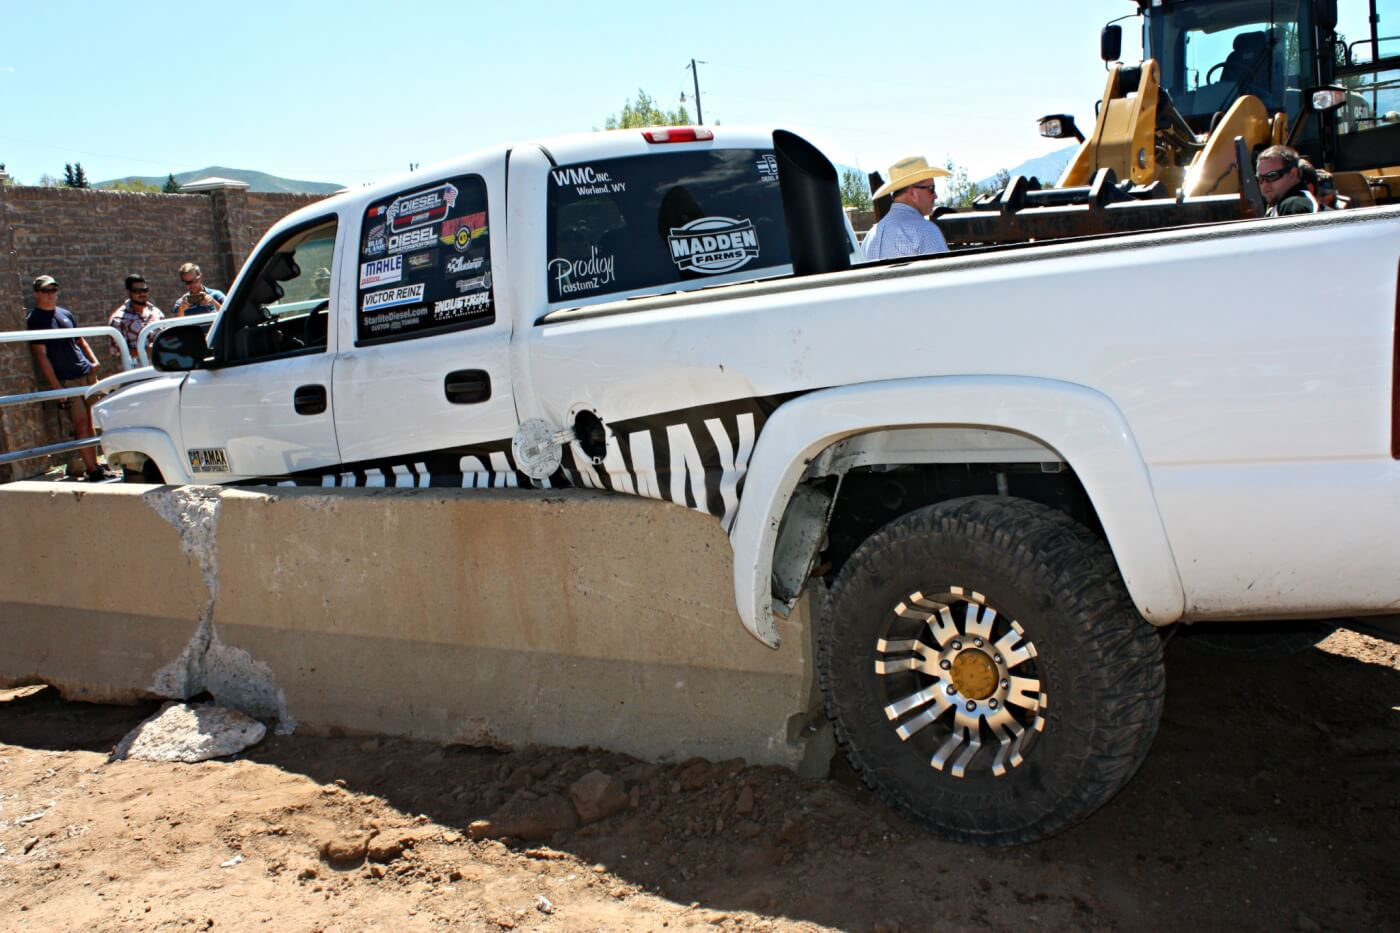 "An impromptu Dirt Drag race put together on the sled pull track mid Saturday ended early after Dan Madden's 900-hp ""Catamax"" Duramax couldn't get stopped in time and slammed into the cement barriers at the end of the track. Luckily no one was hurt."